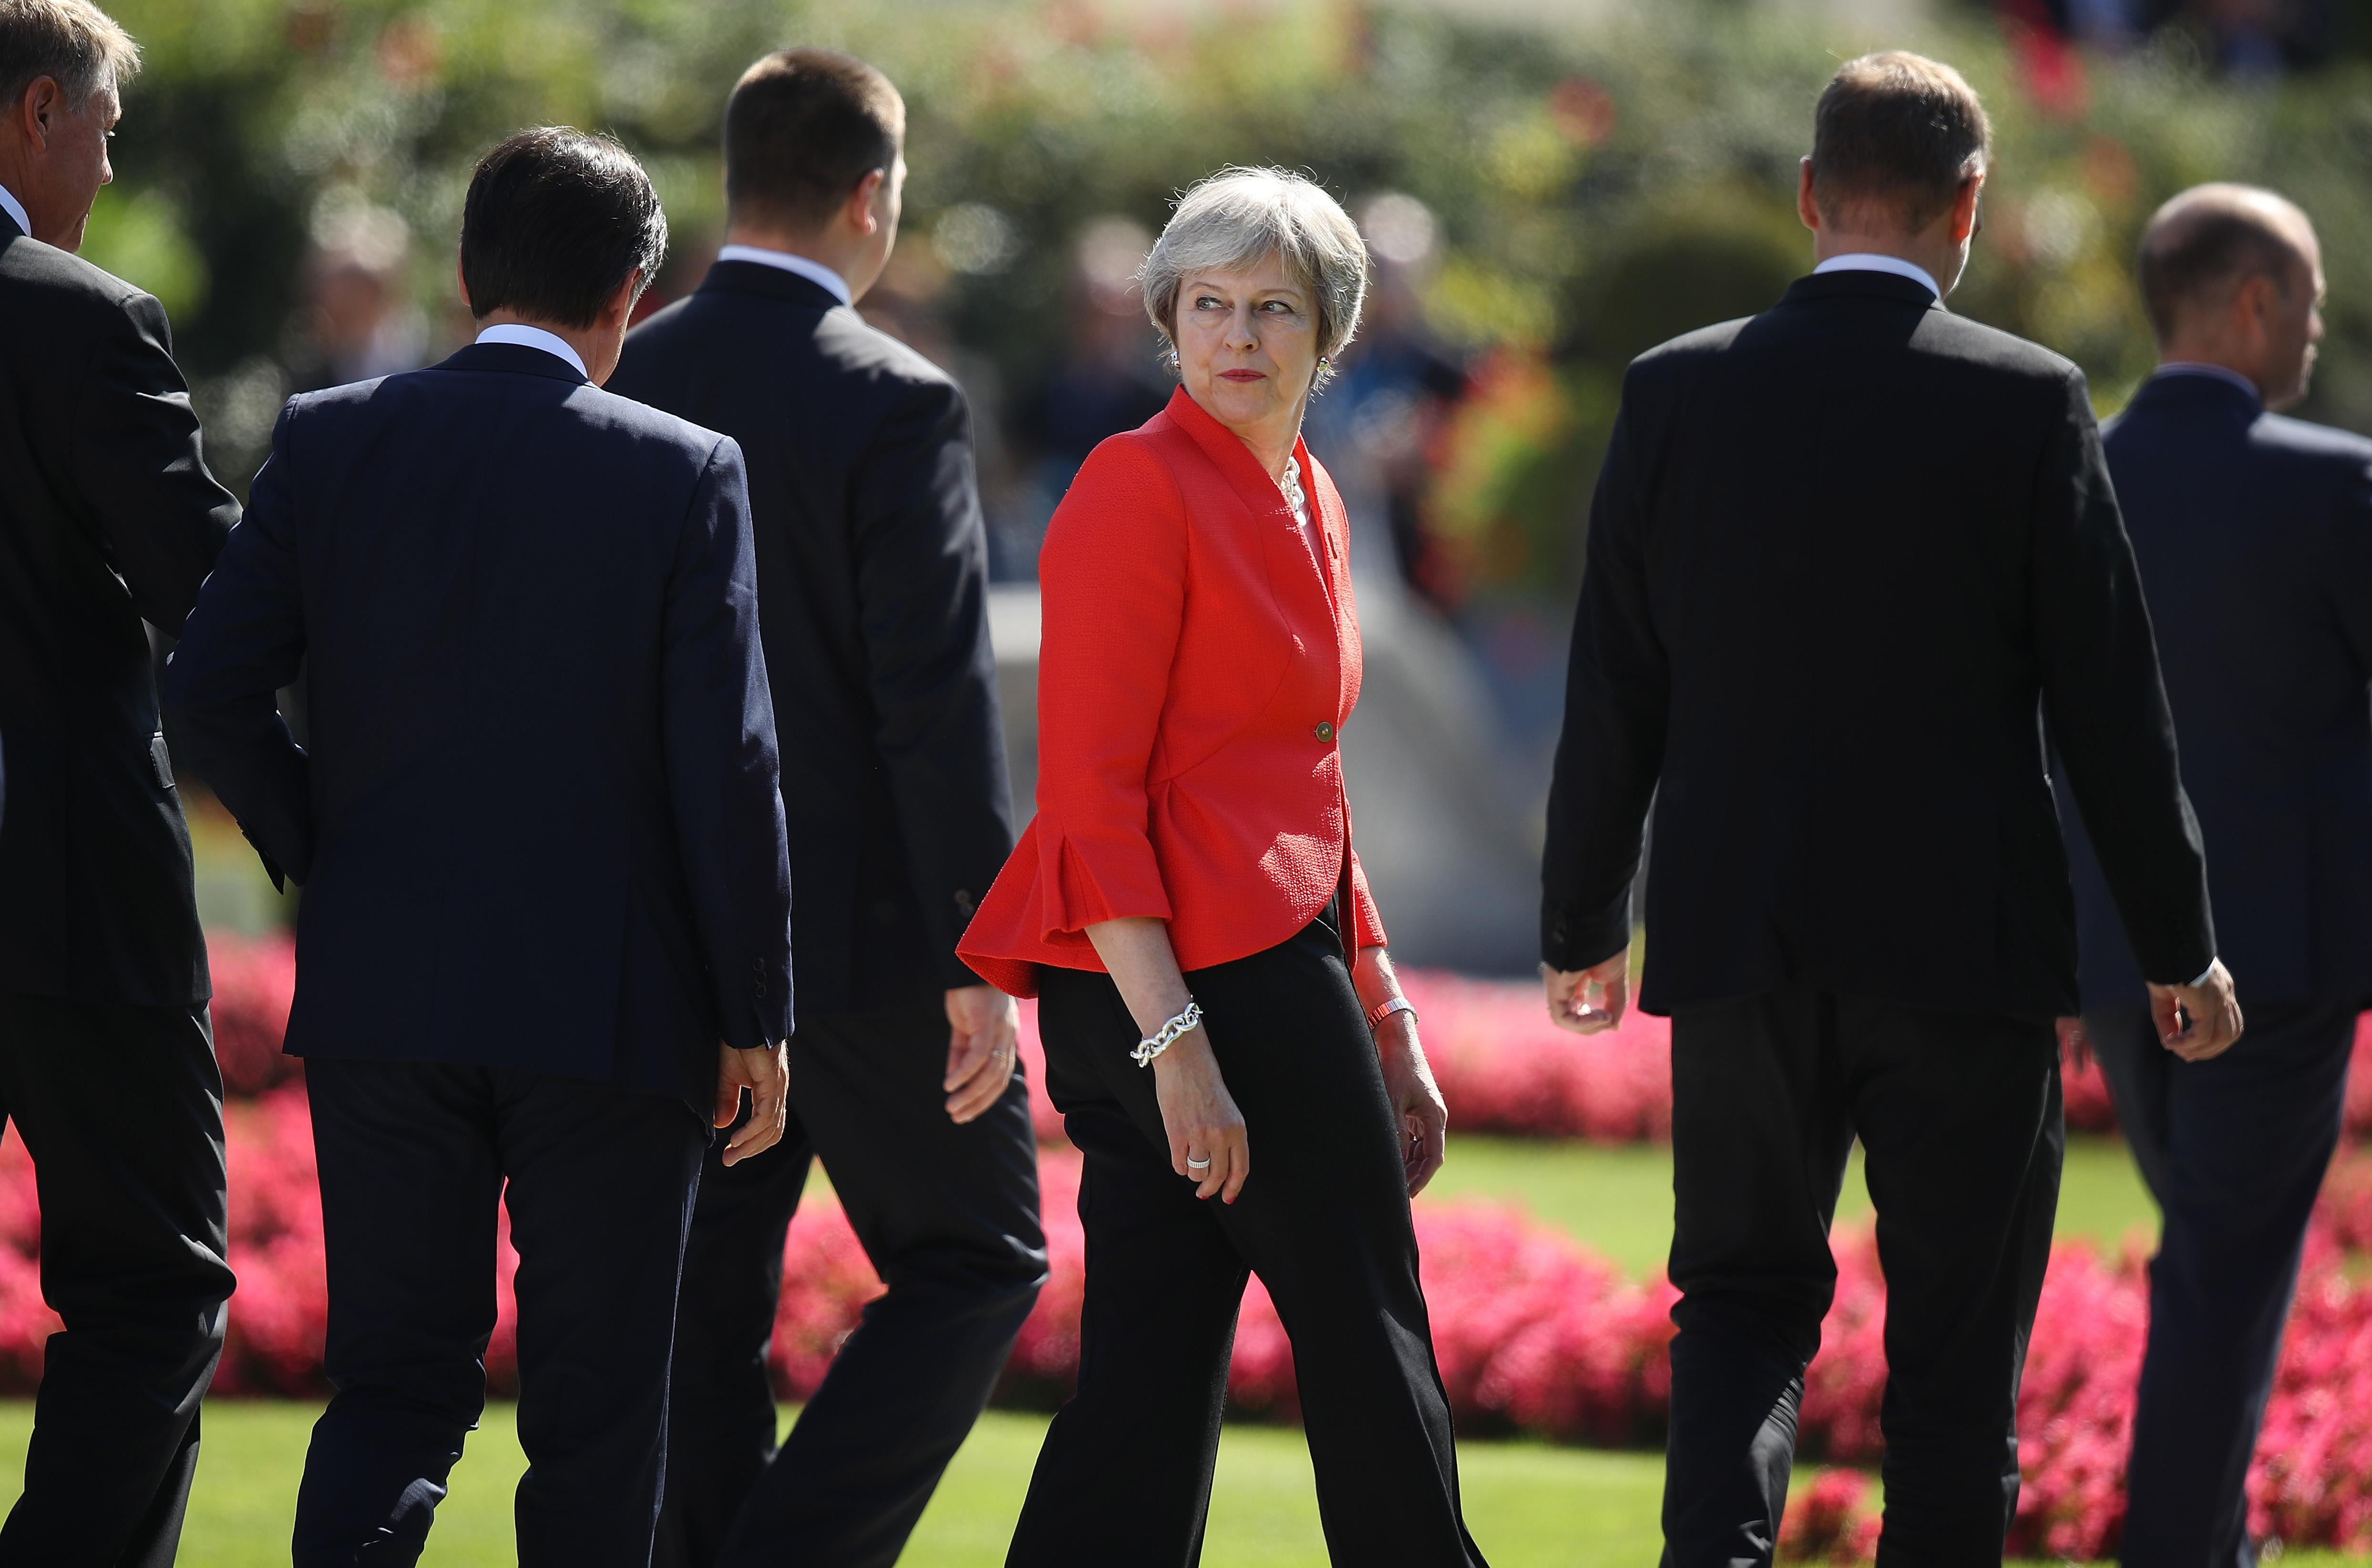 British Prime Minister Theresa May looks back as she and other leaders depart following the family photo on the second day of an informal summit of leaders of the European Union on September 20, 2018.